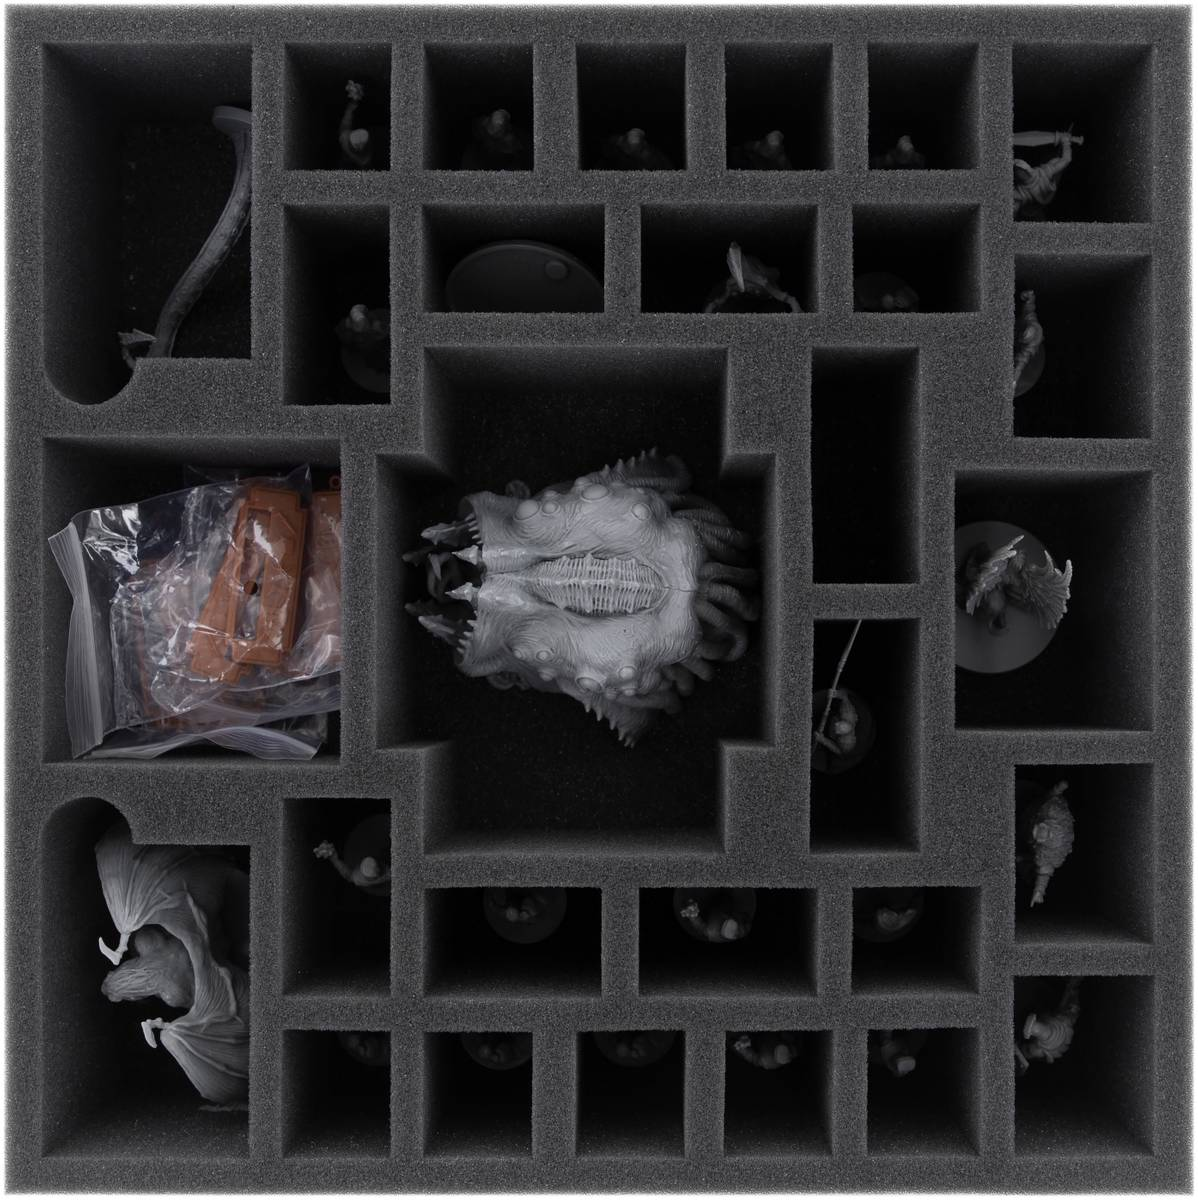 AG075MB01 foam tray for Mythic Battles: Pantheon 4 expansions